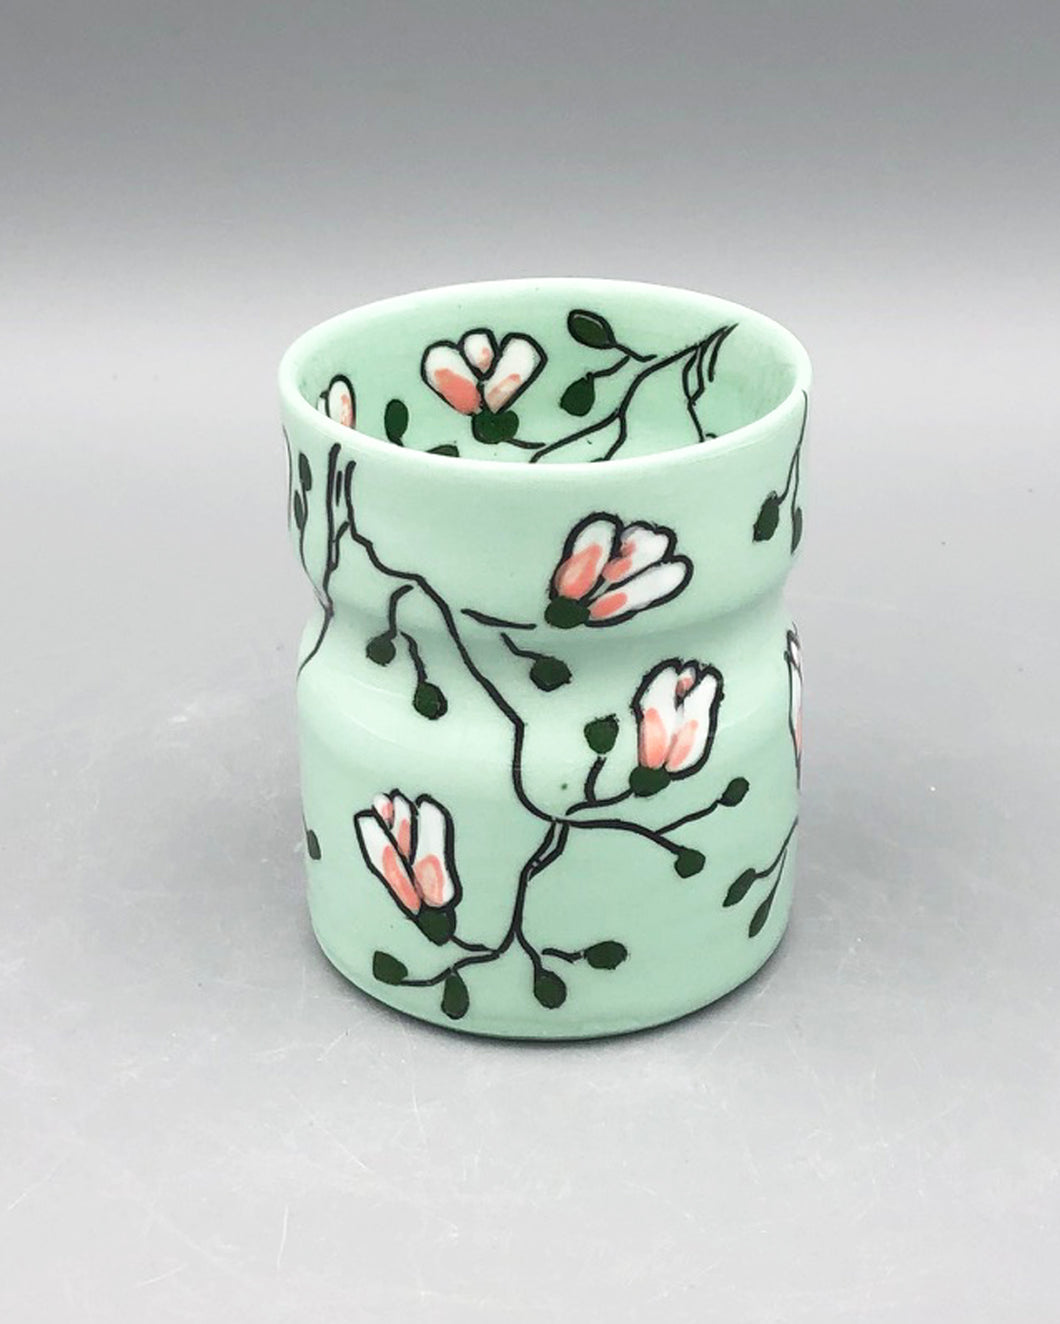 Wine tumbler (5oz) - Magnolia design on green porcelain